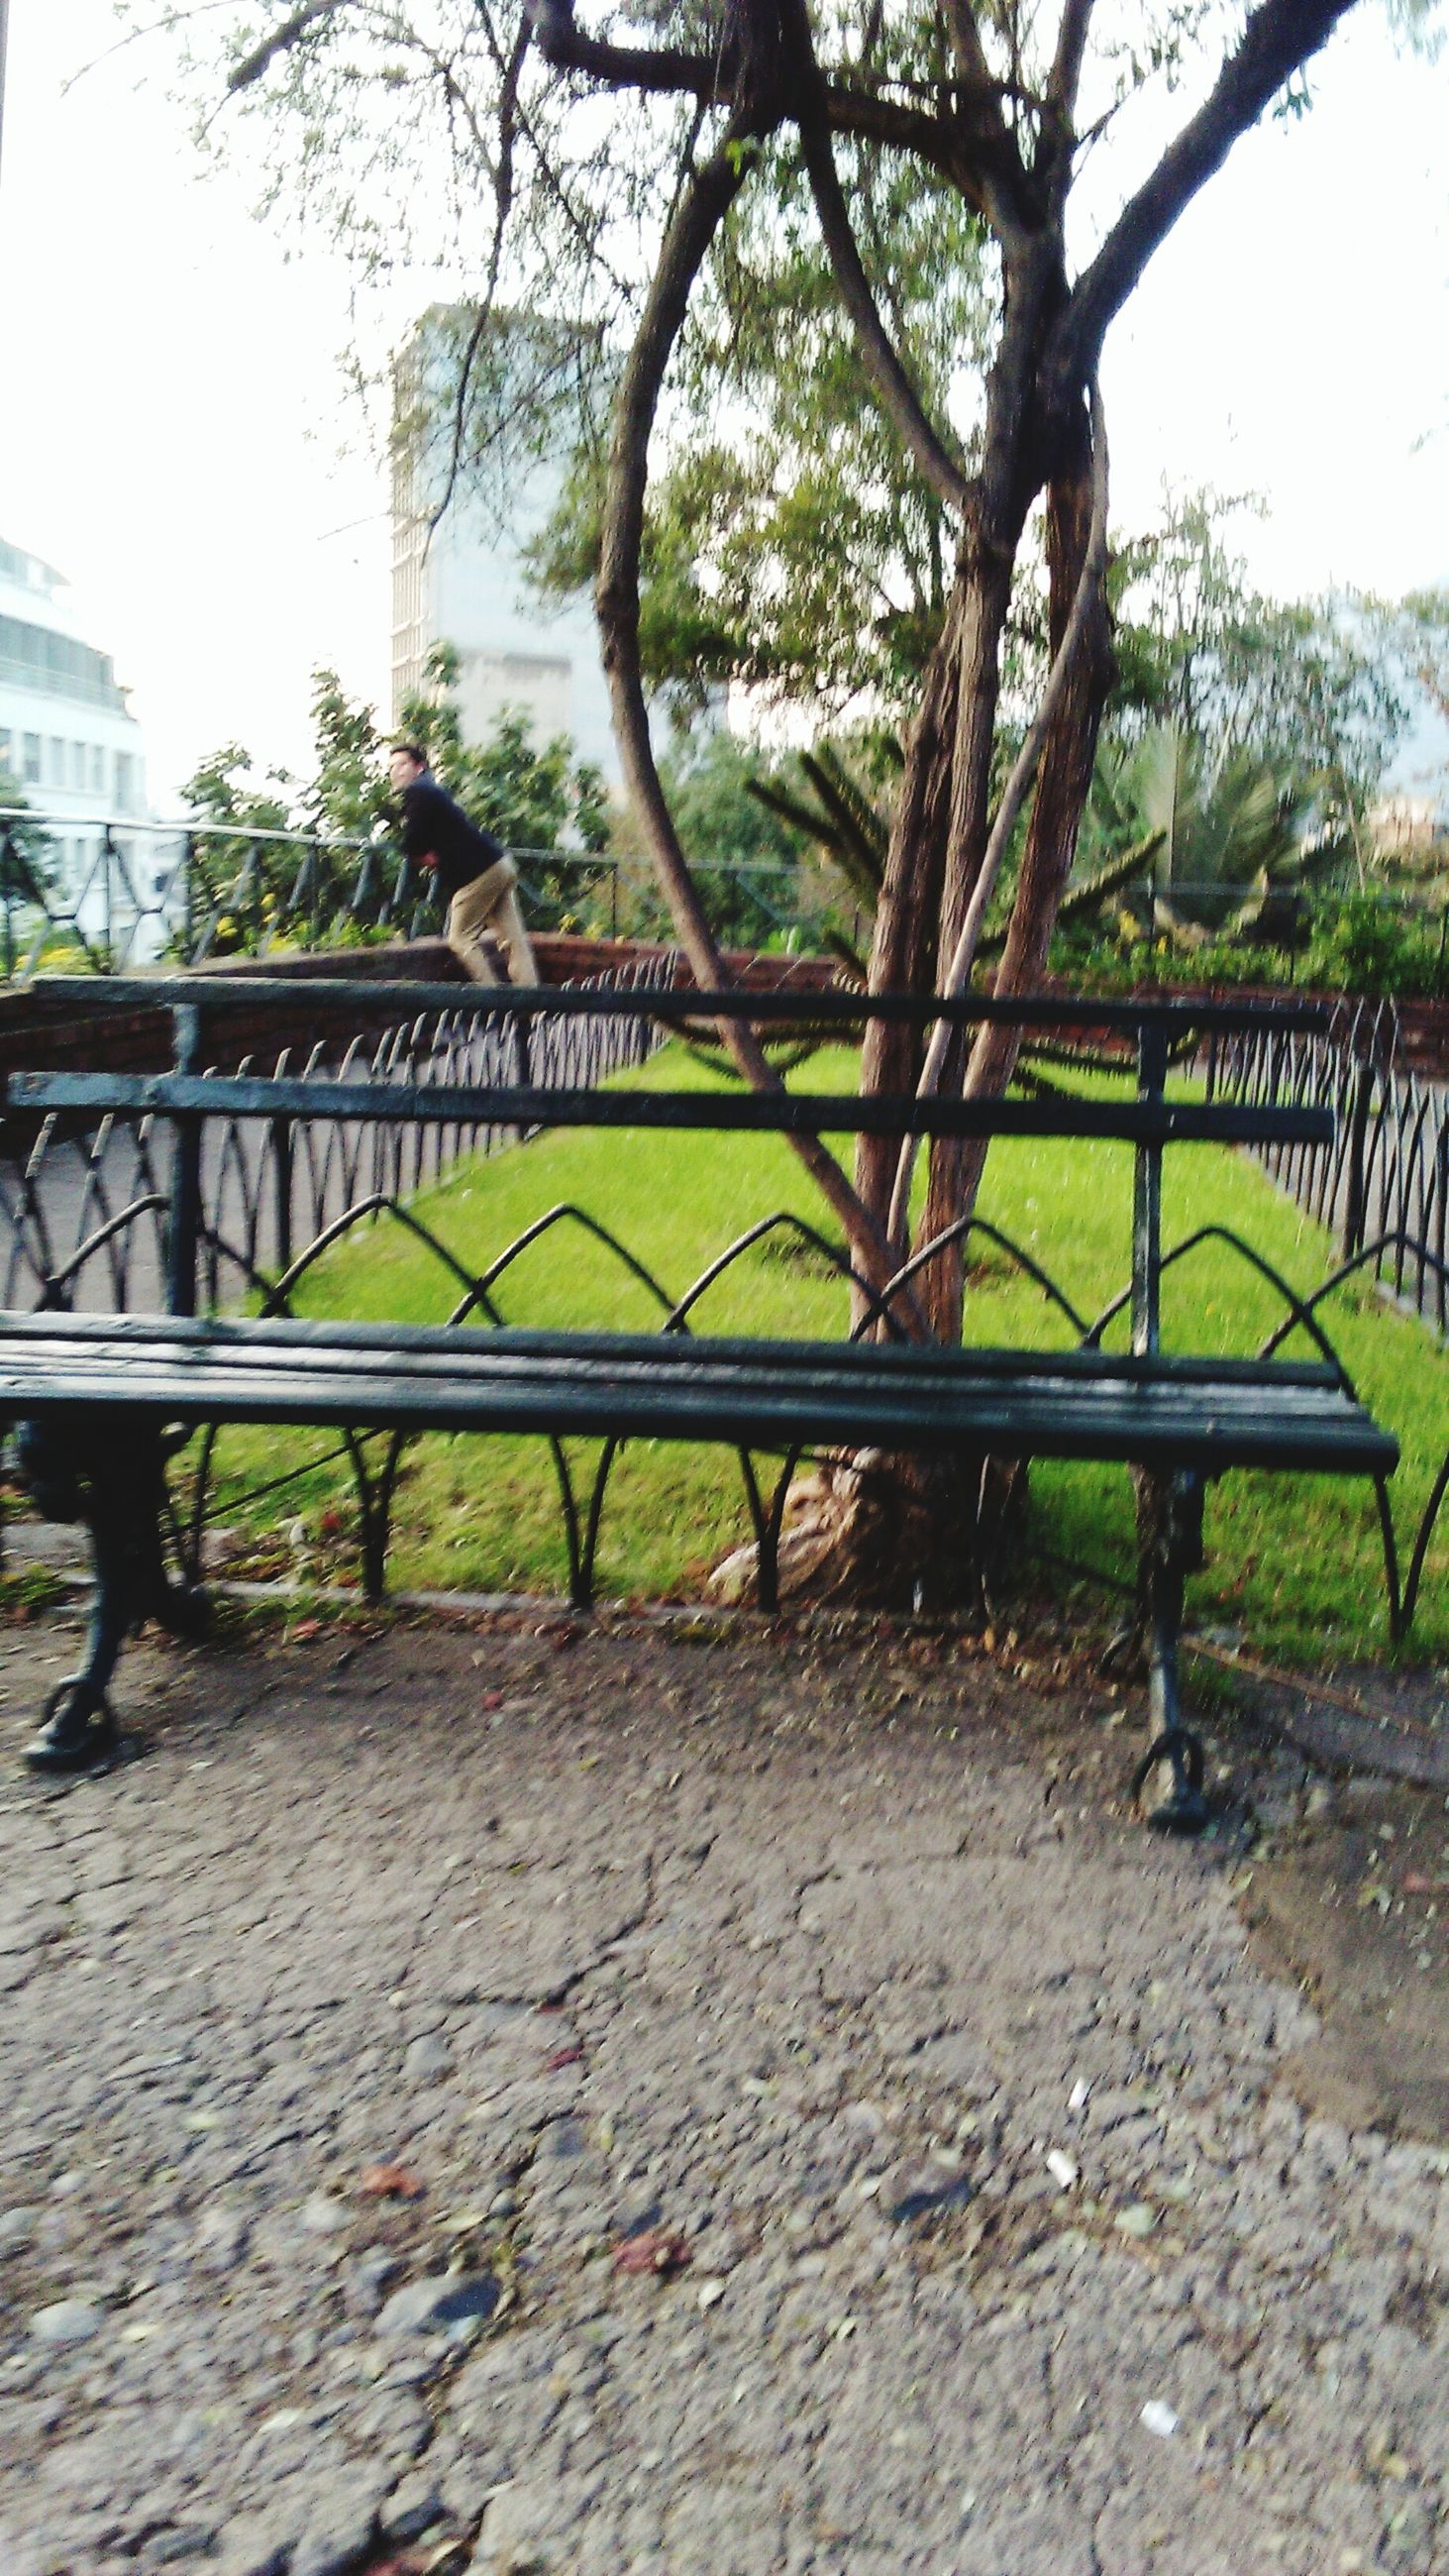 tree, fence, built structure, text, railing, architecture, branch, park - man made space, growth, western script, sky, day, nature, outdoors, tranquility, bench, no people, protection, building exterior, sunlight